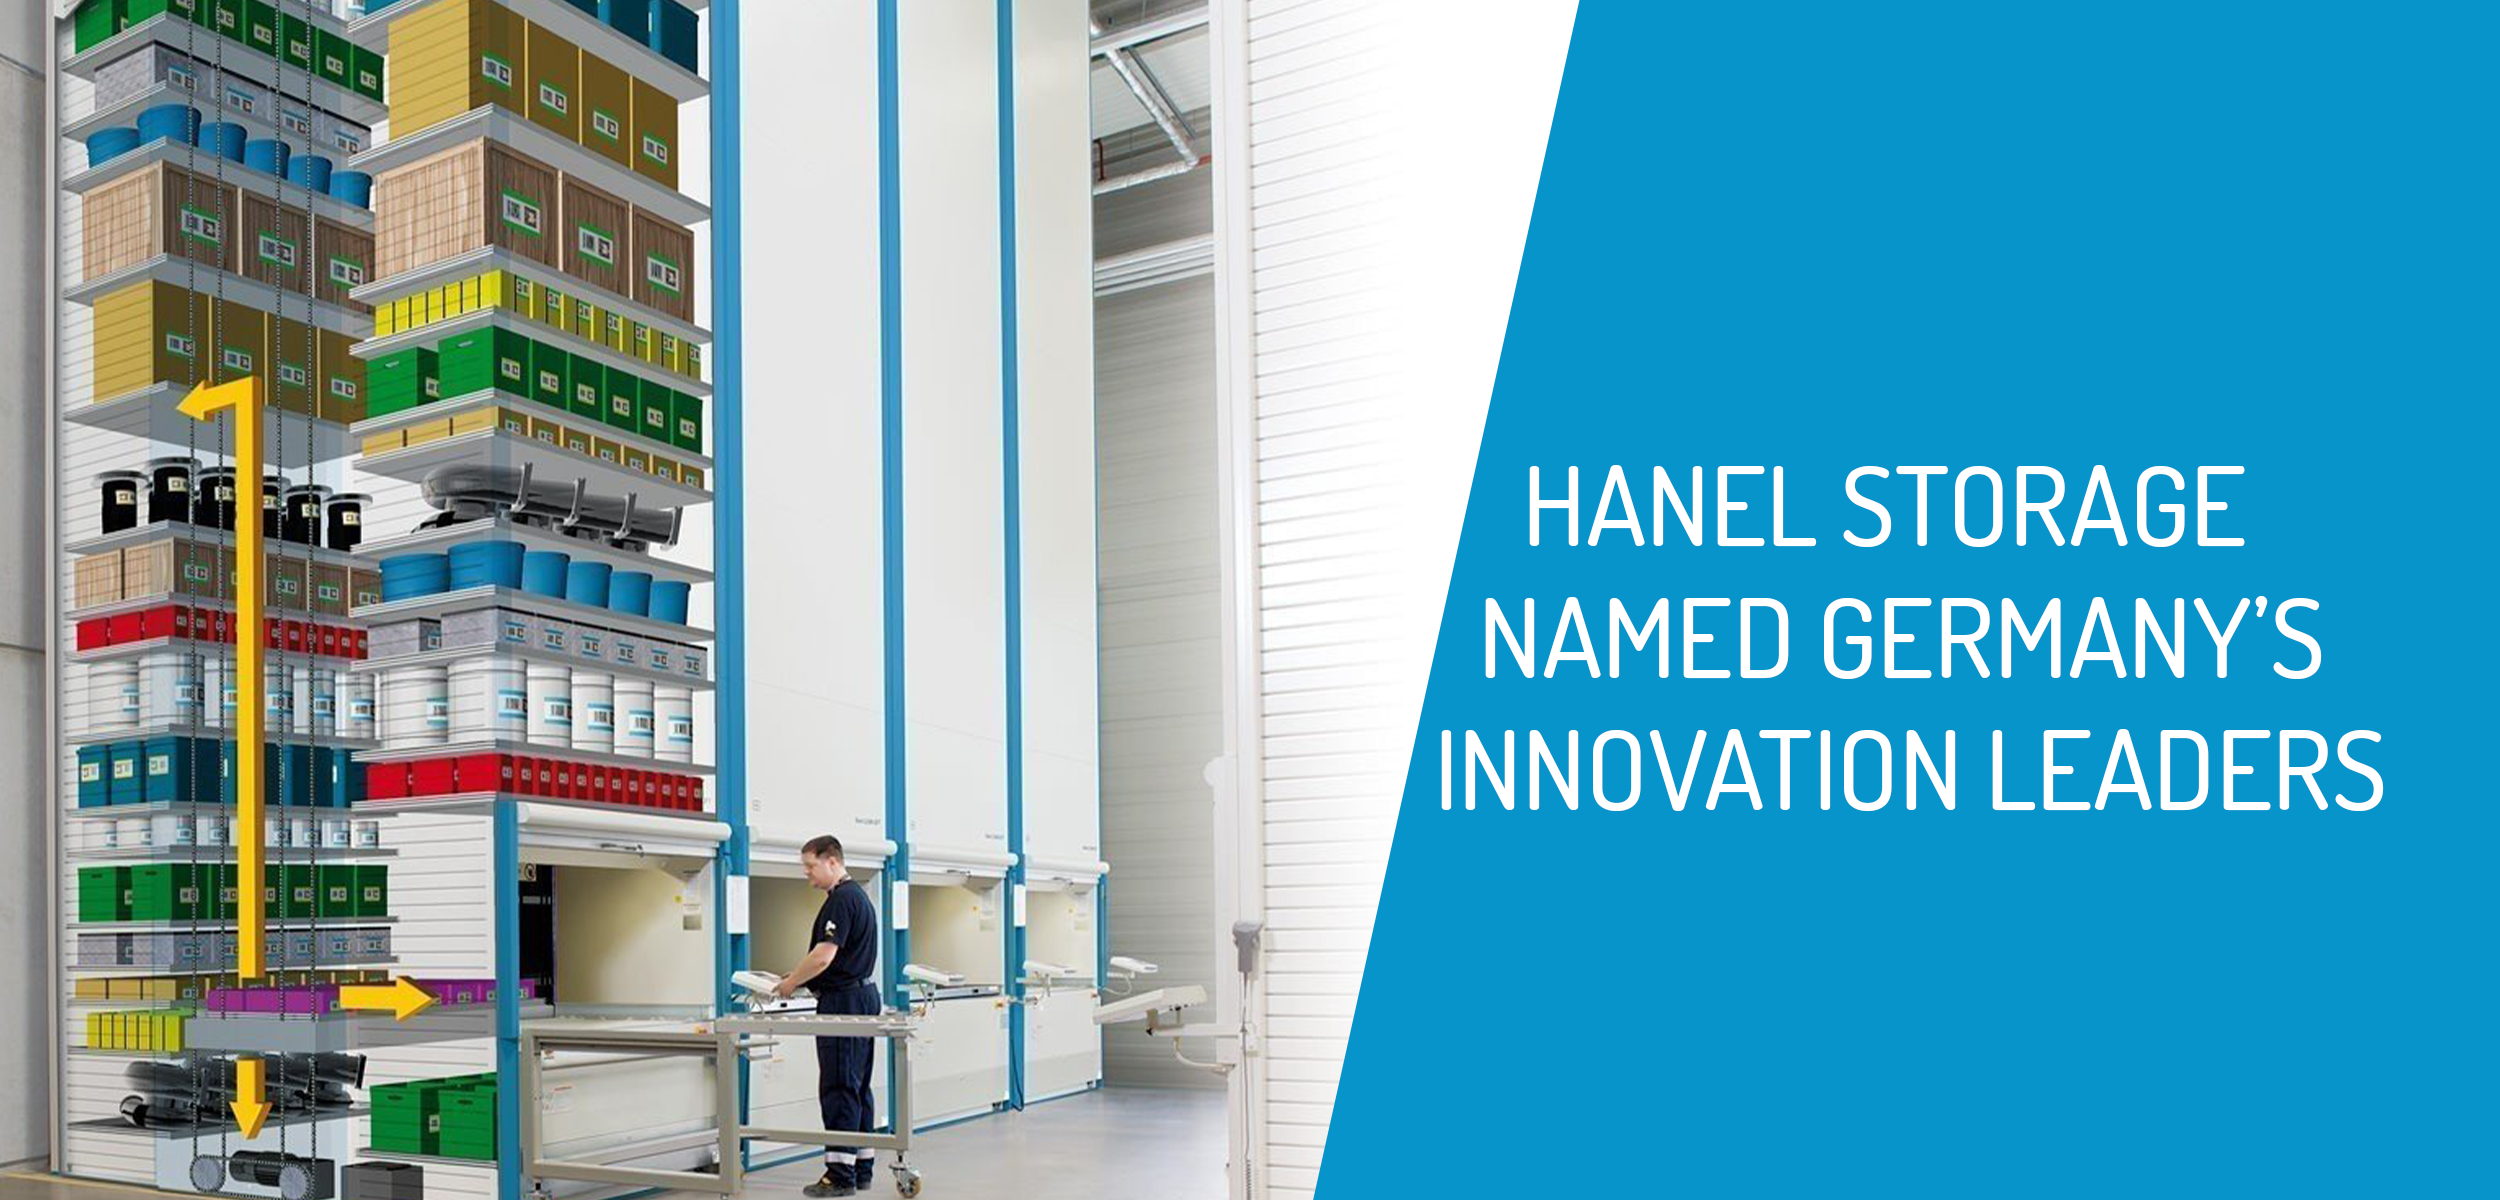 Hanel Innovation Leaders Hero